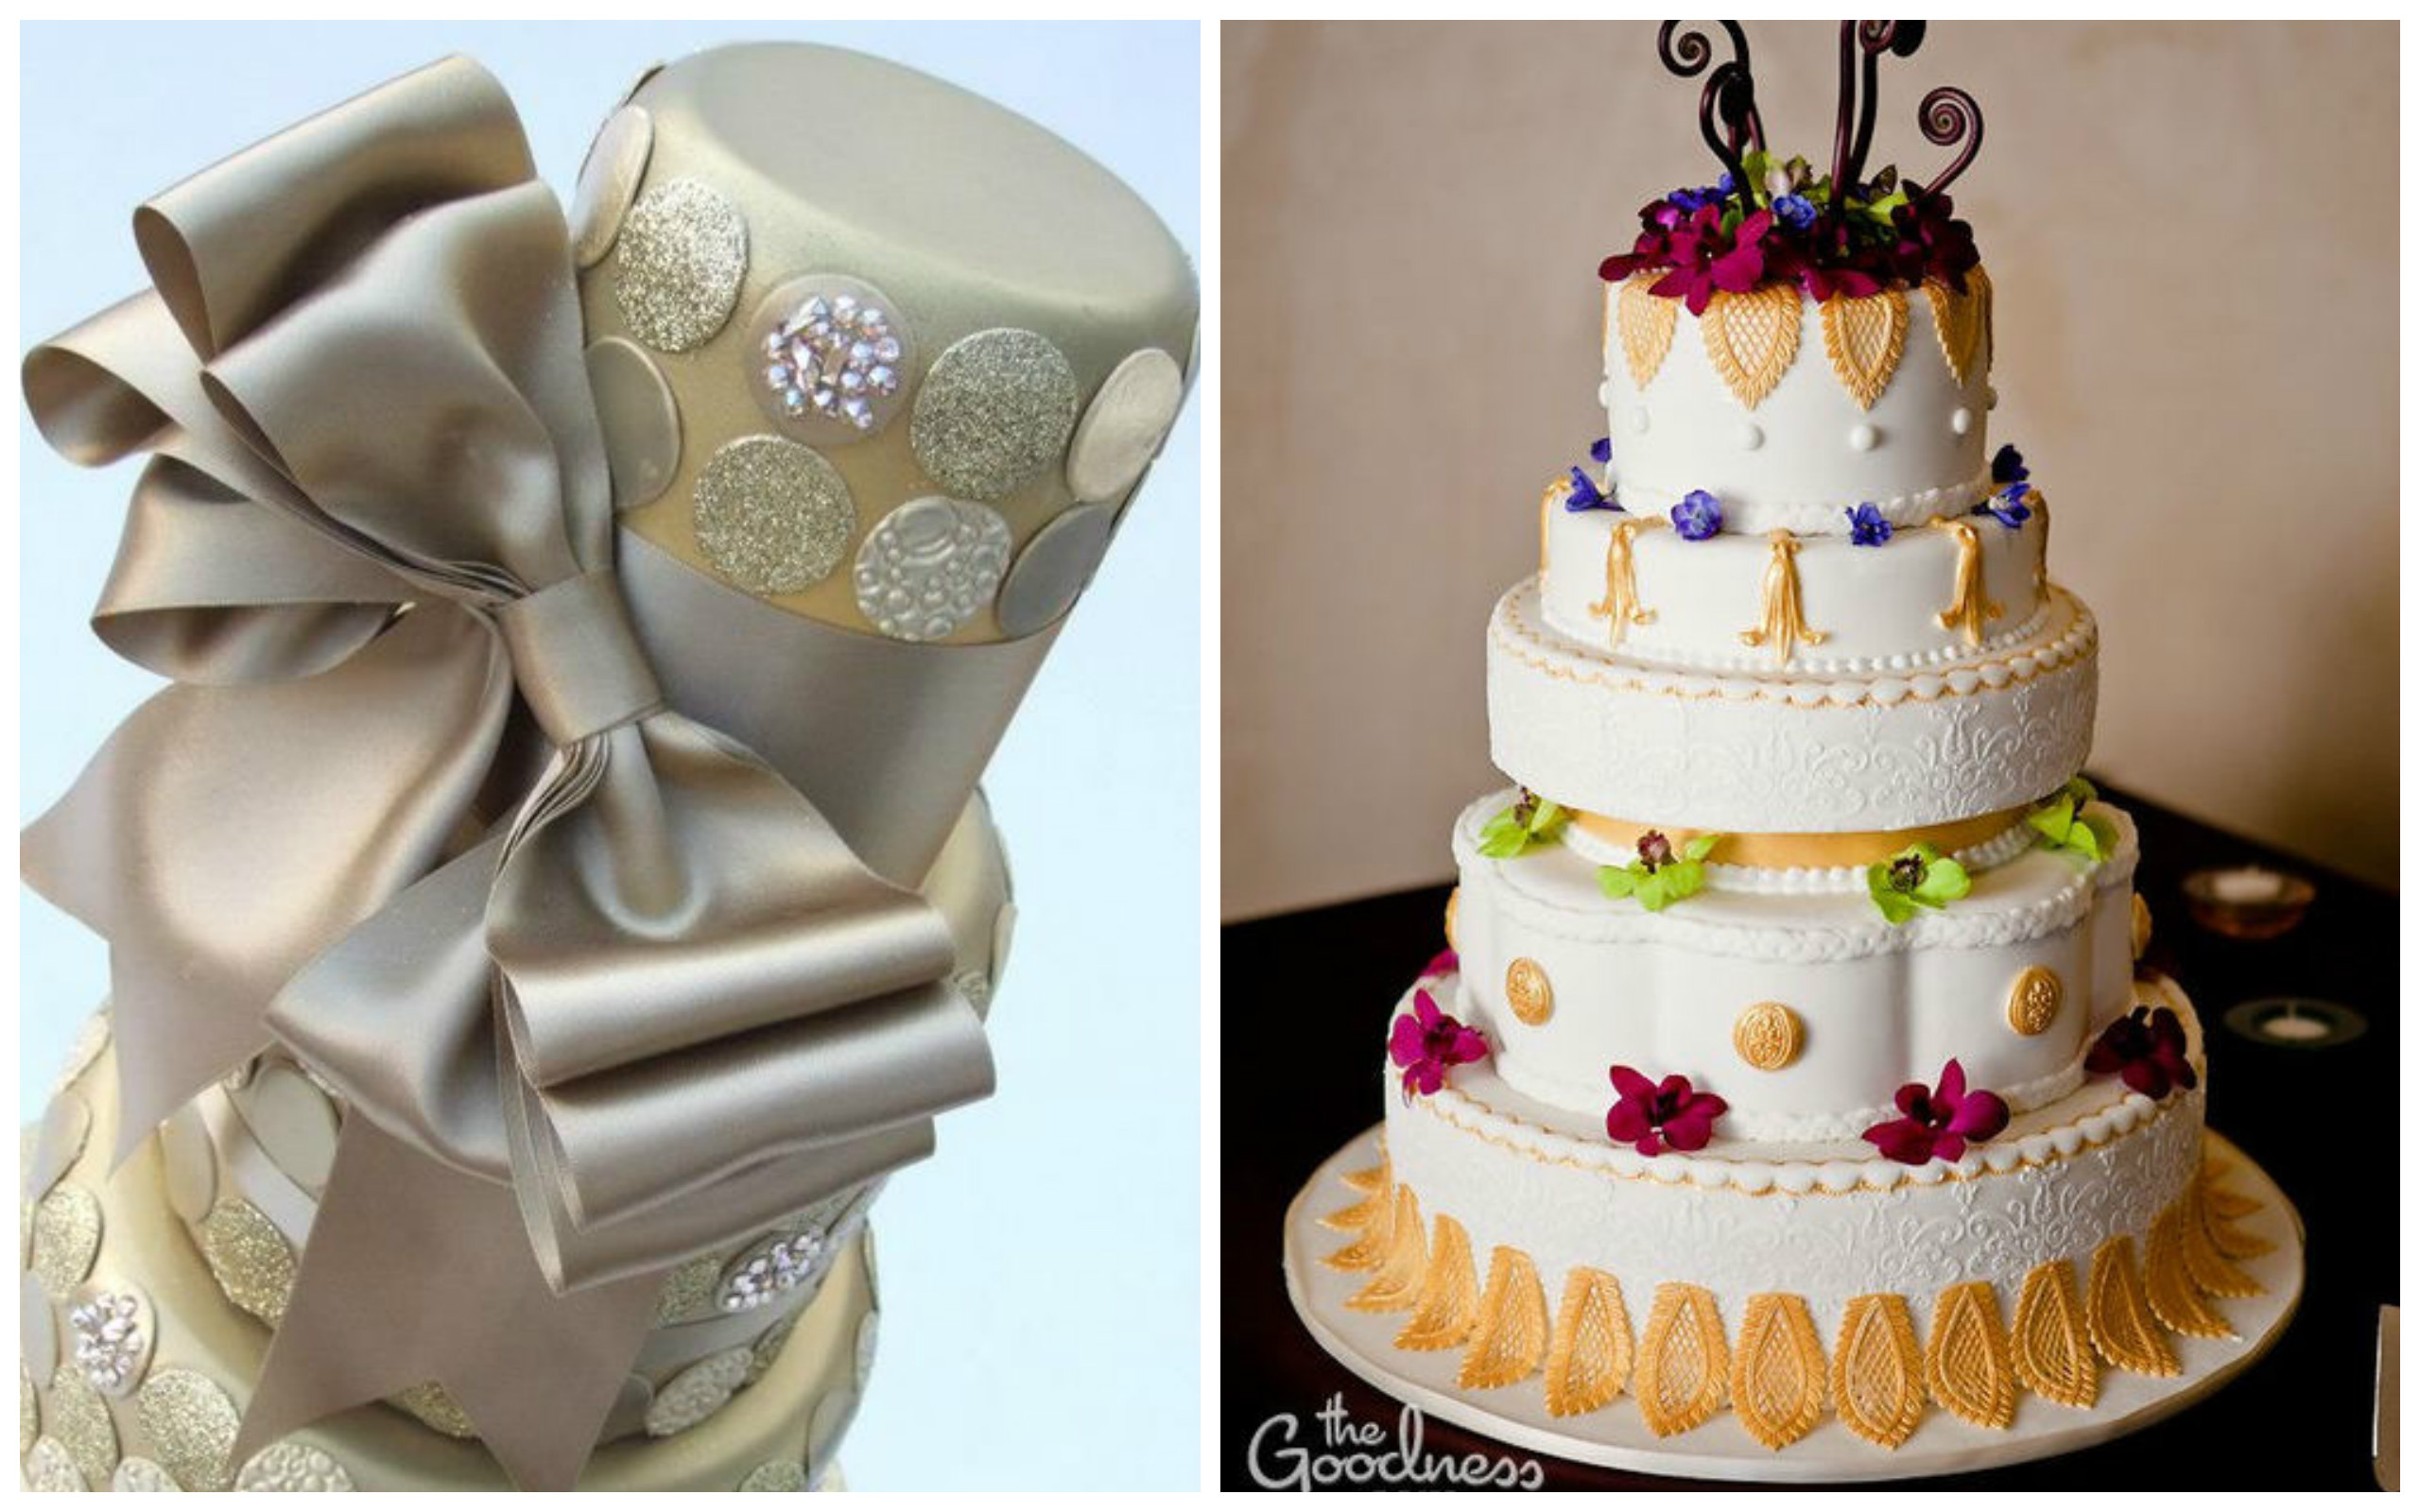 20 Super Awesome And Fantastic Cakes